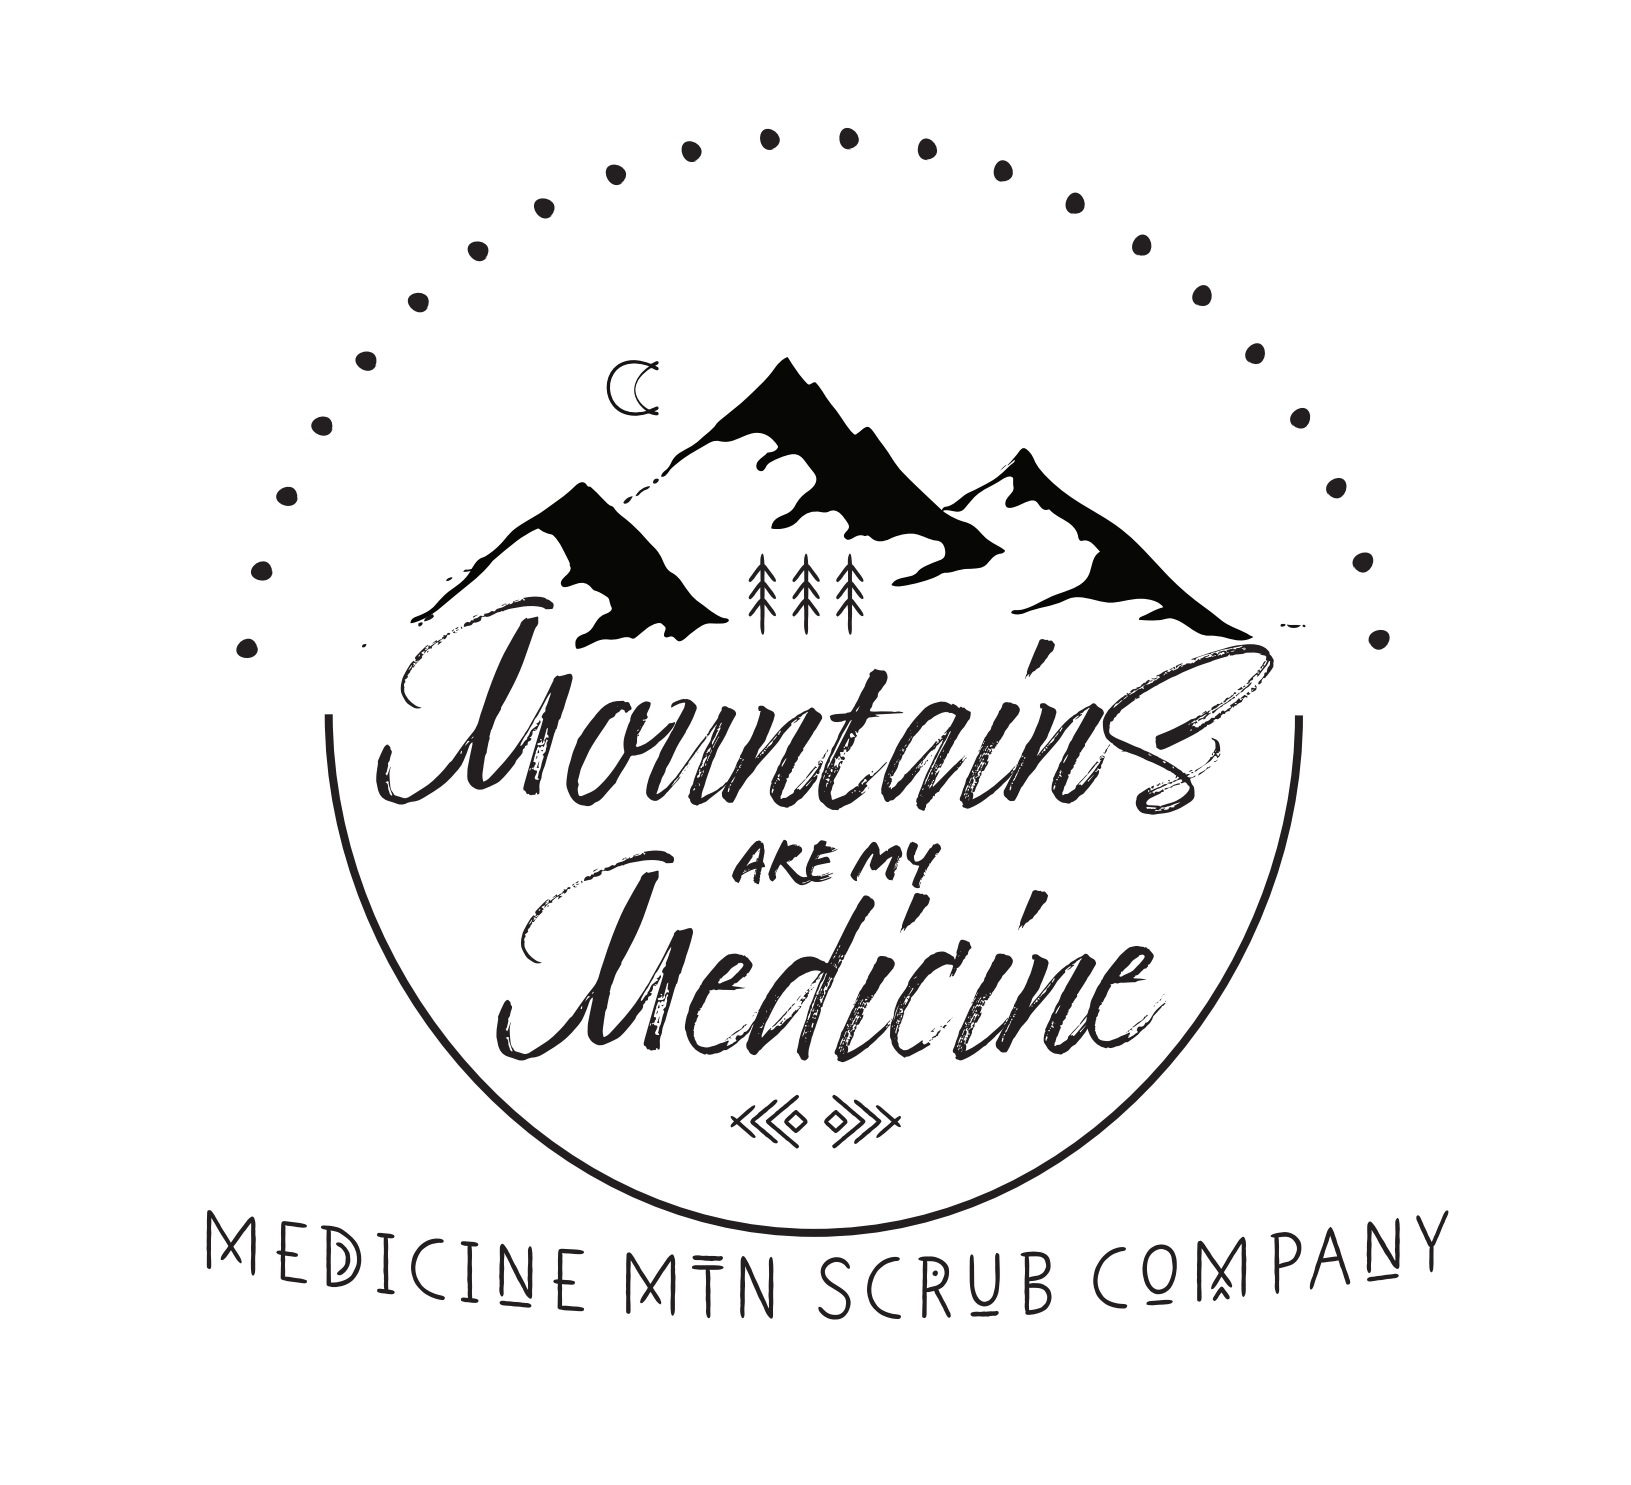 Mountains Are My Medicine logo from Medicine Mountain Scrub Company